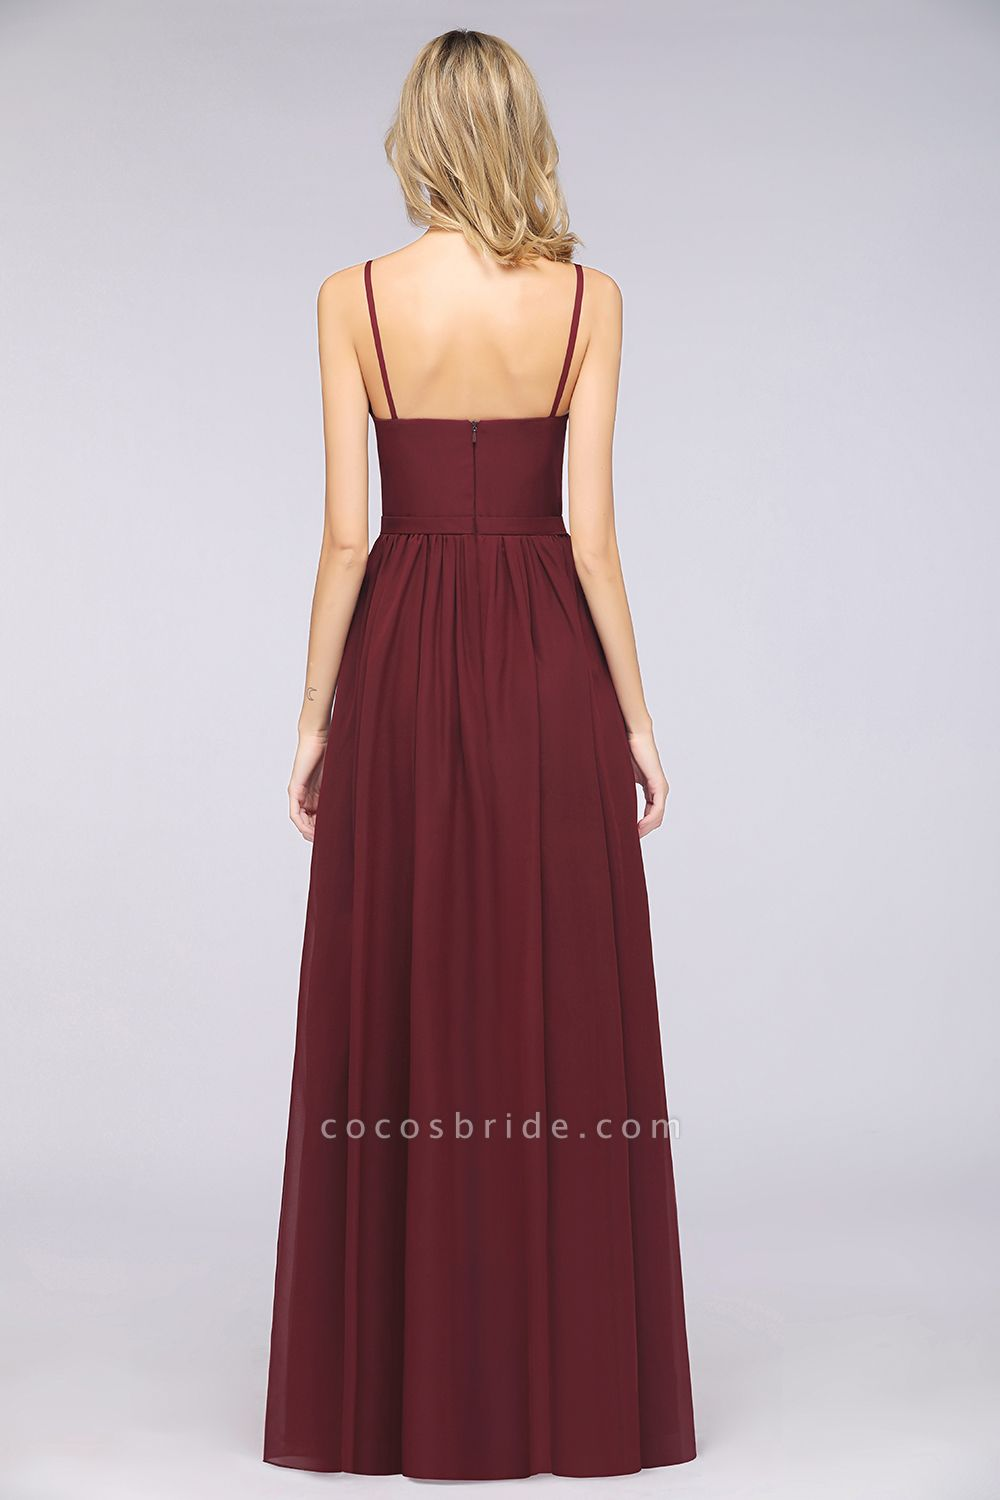 A-Line Chiffon Appliques Spaghetti-Straps Deep-V-Neck Sleeveless Floor-Length Bridesmaid Dress with Ruffles